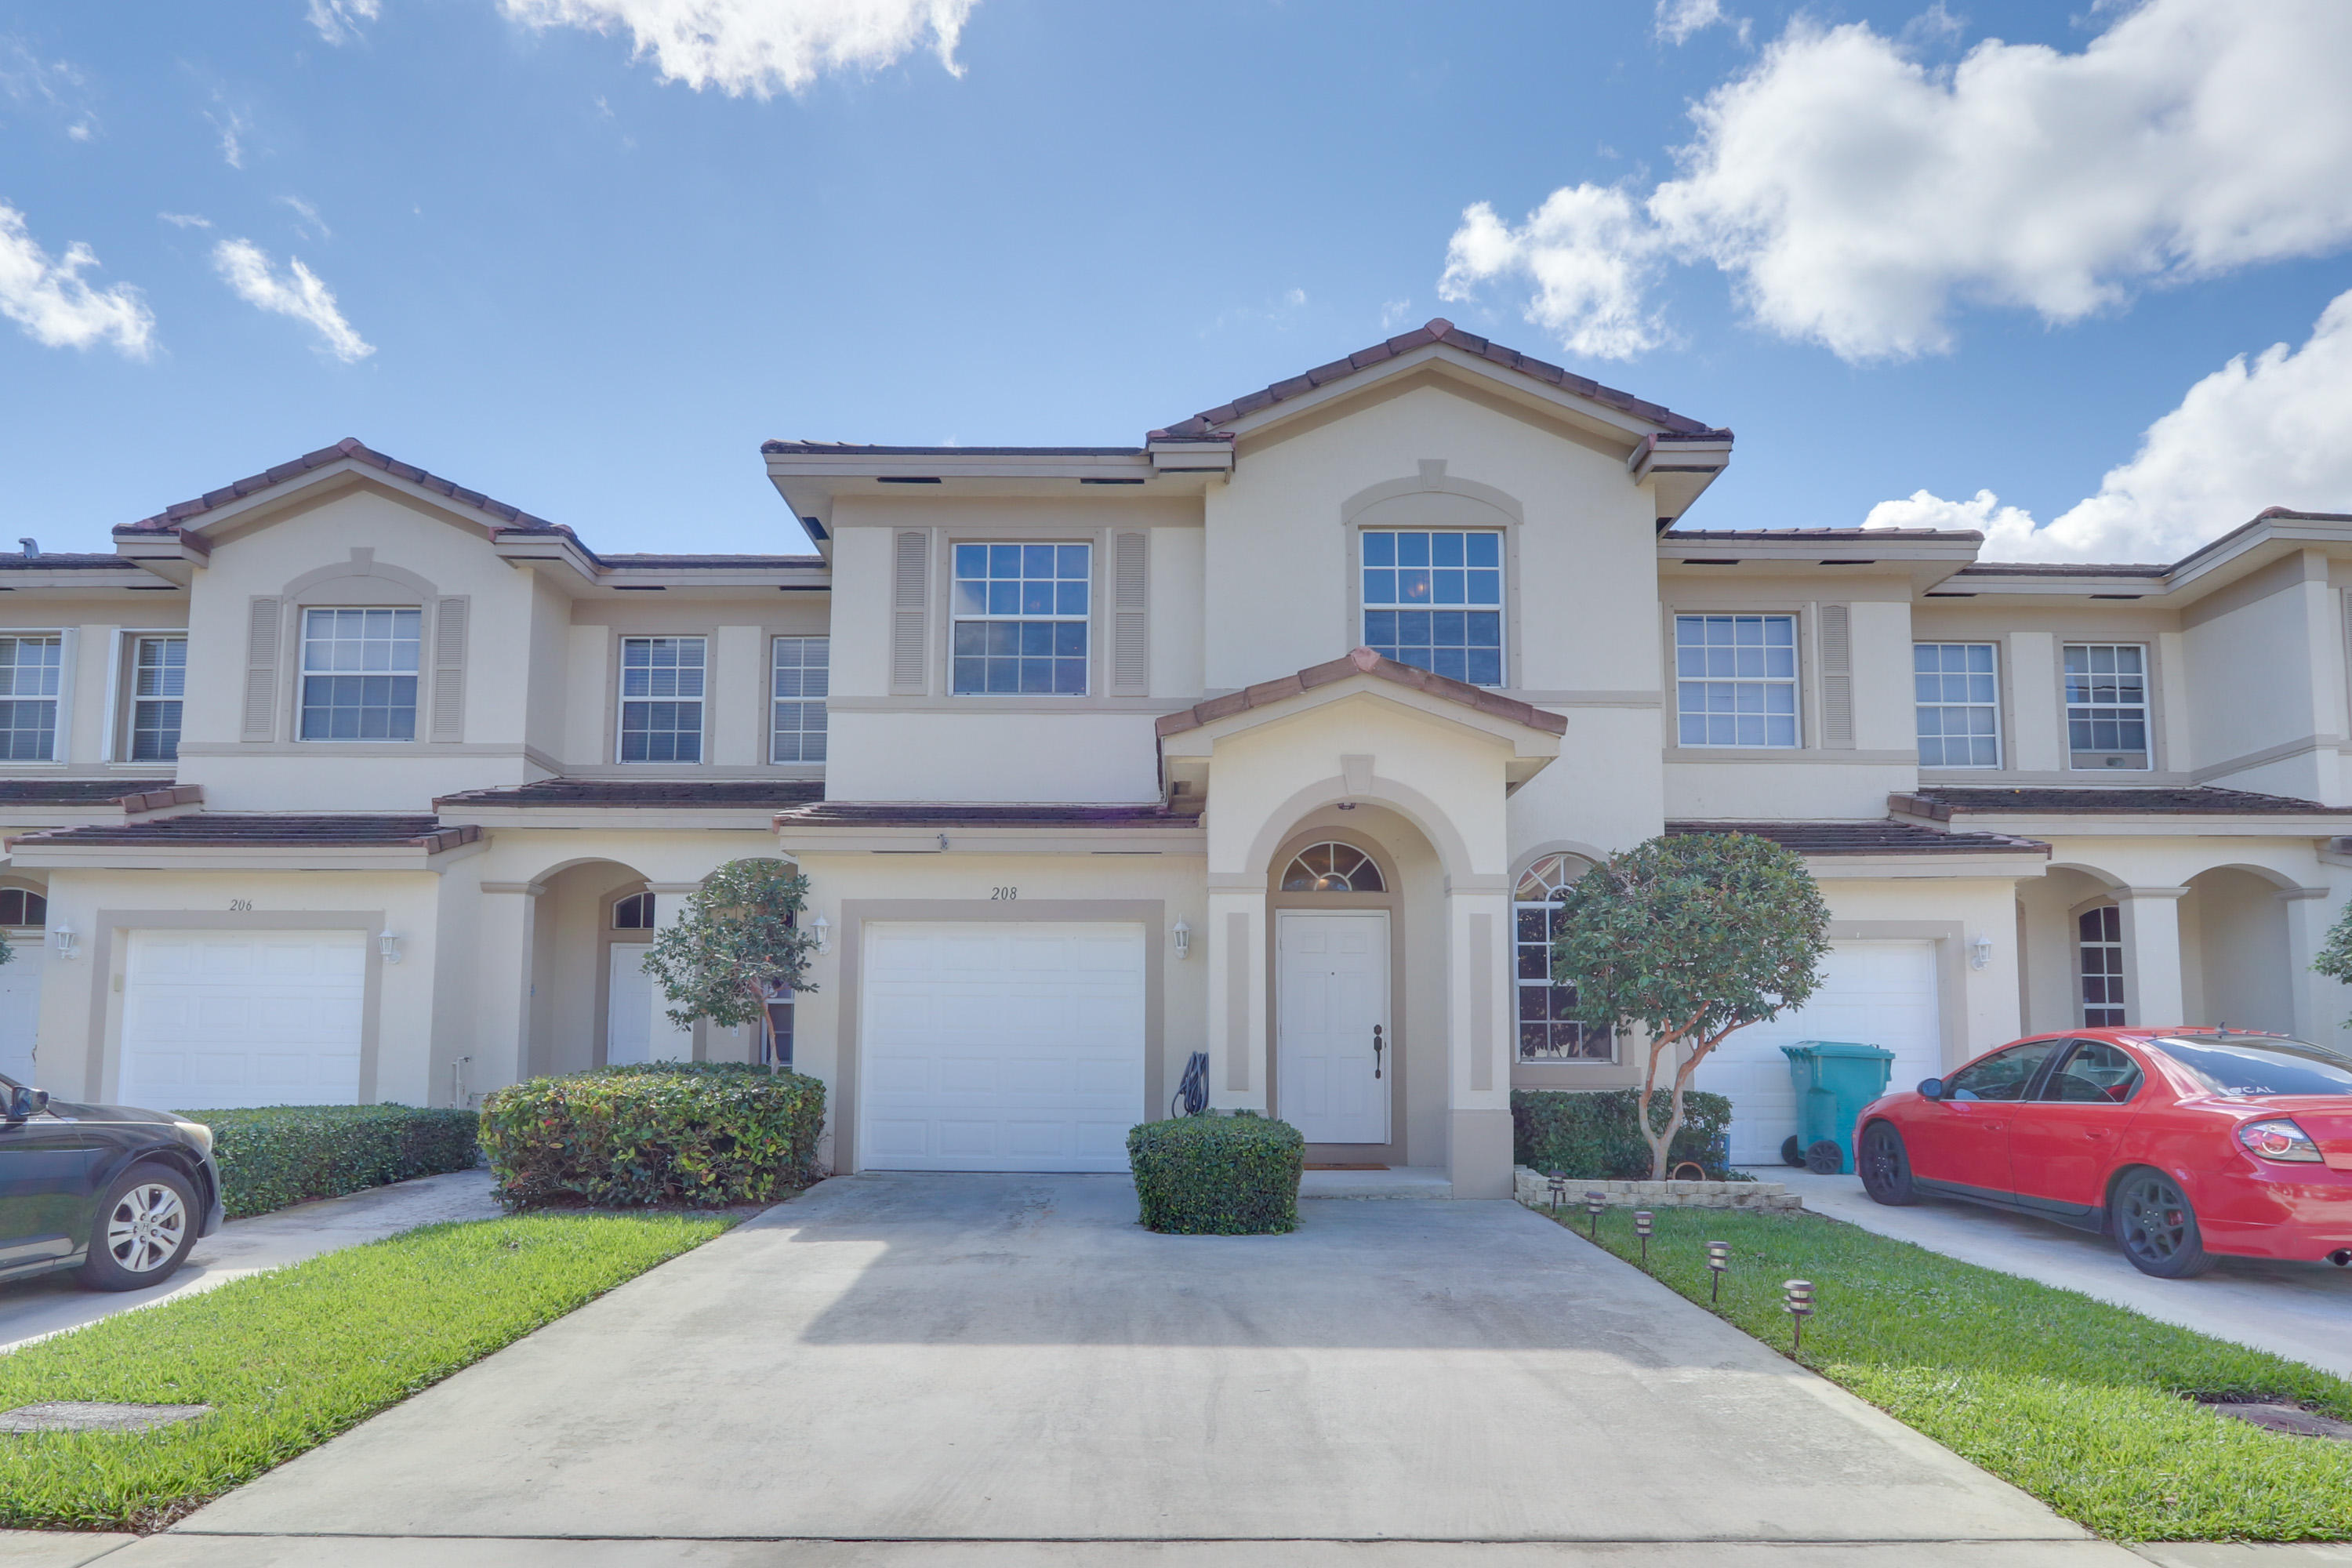 208 Elm Way Boynton Beach, FL 33426